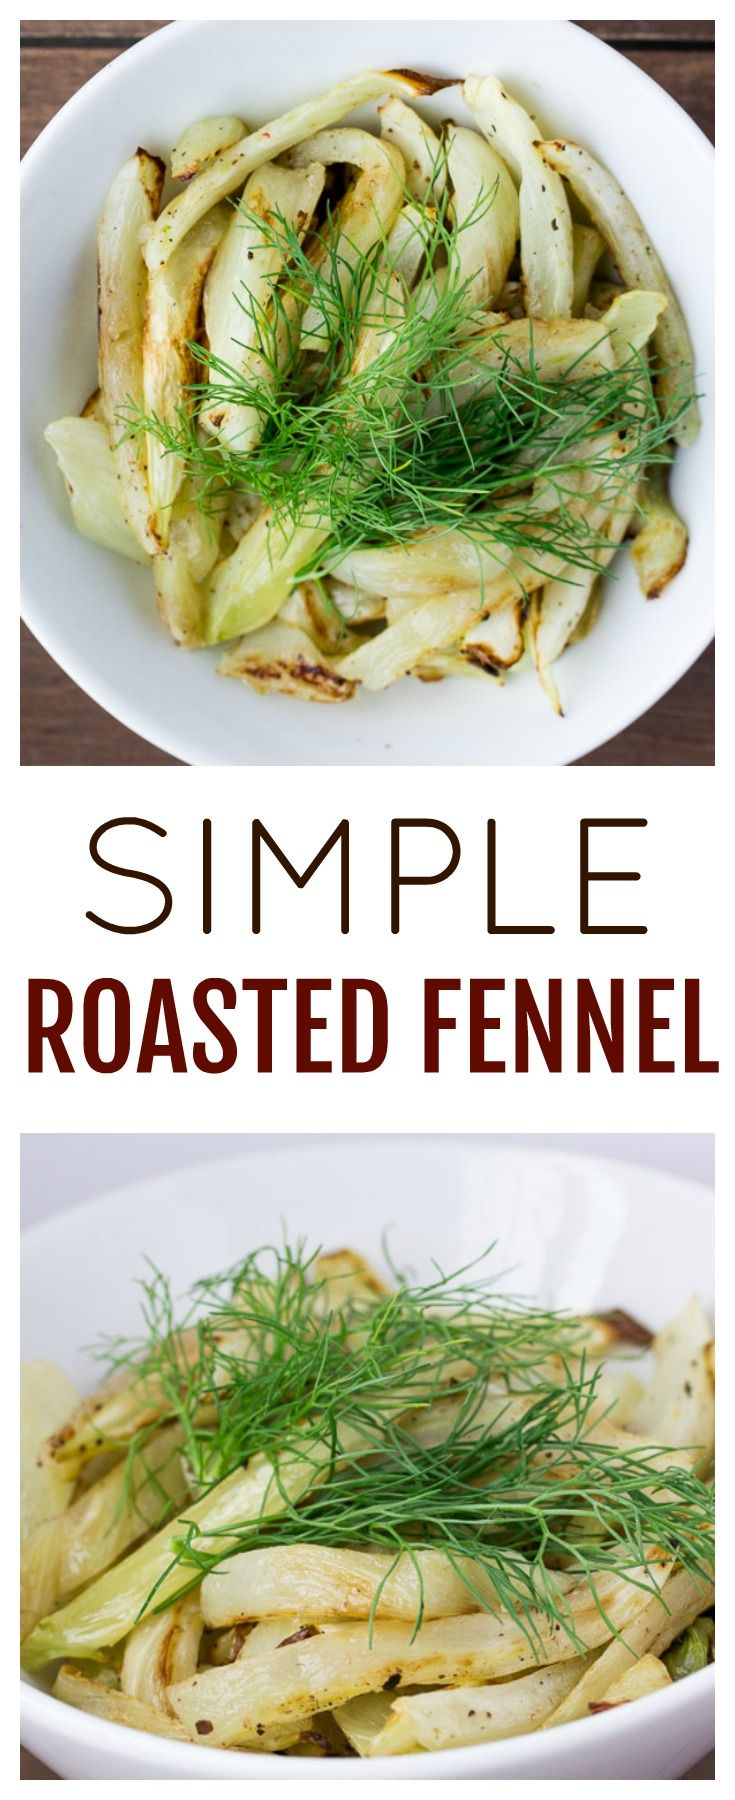 Simple Roasted Fennel is a delicious, somewhat unique, side dish recipe. It's easy to make and can be enjoyed all year! It's naturally gluten free and low carb, as well! |